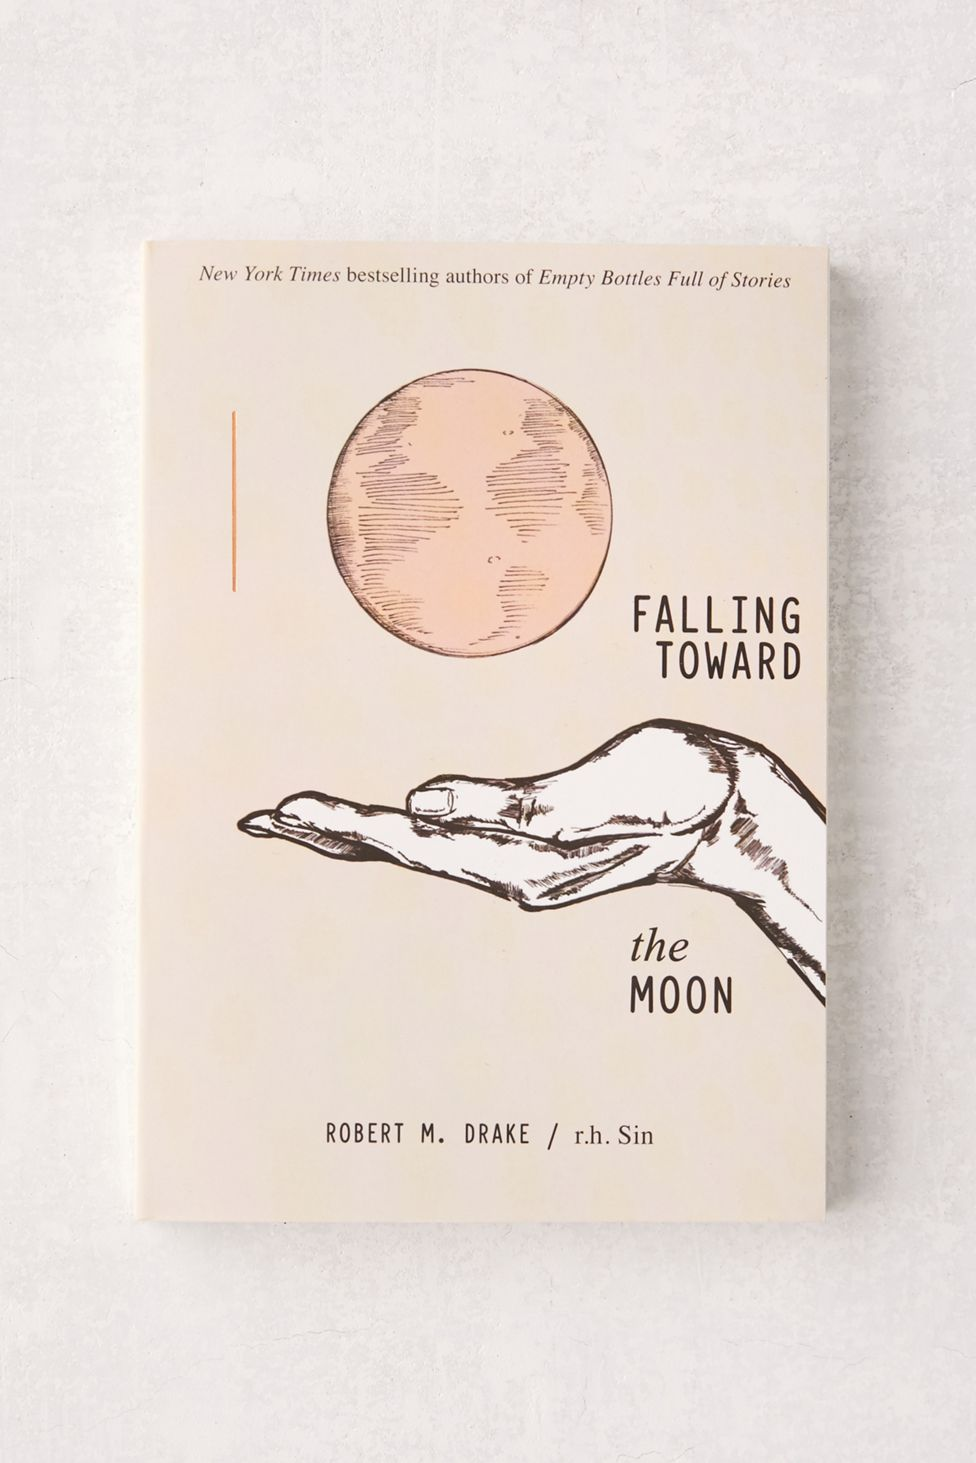 Shop Falling Toward the Moon By r. Sin & Robert M. Drake at Urban Outfitters today.